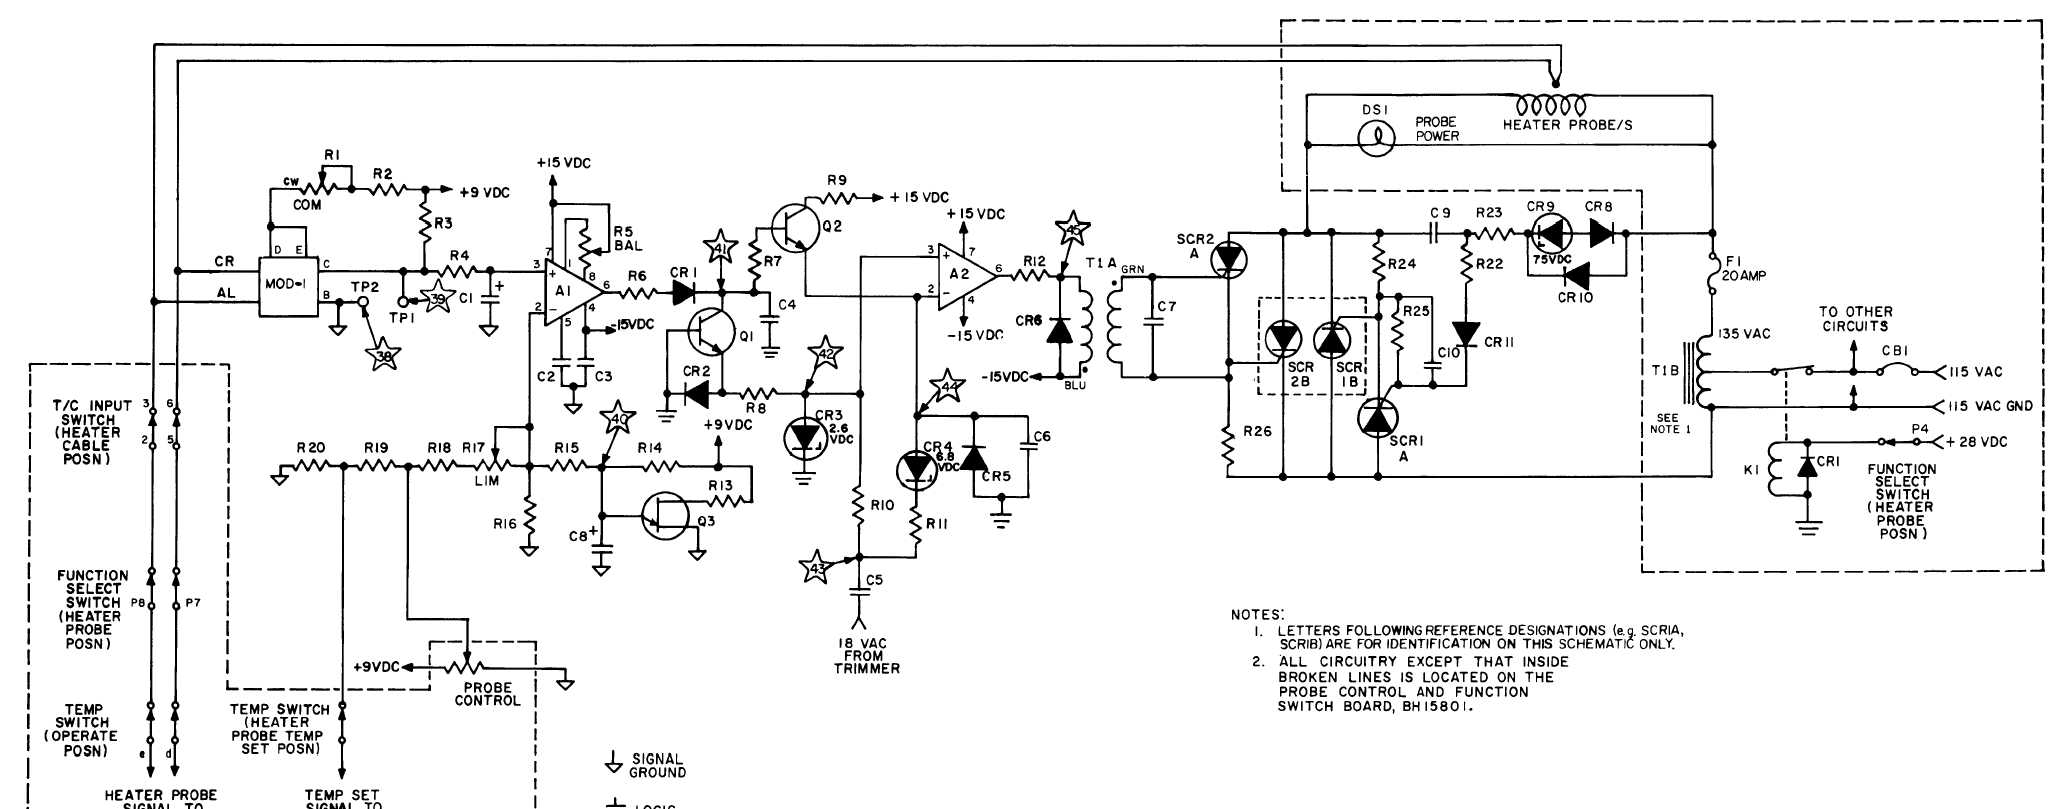 Fo 1 Schematic Diagram Of Heater Probe Control Circuit